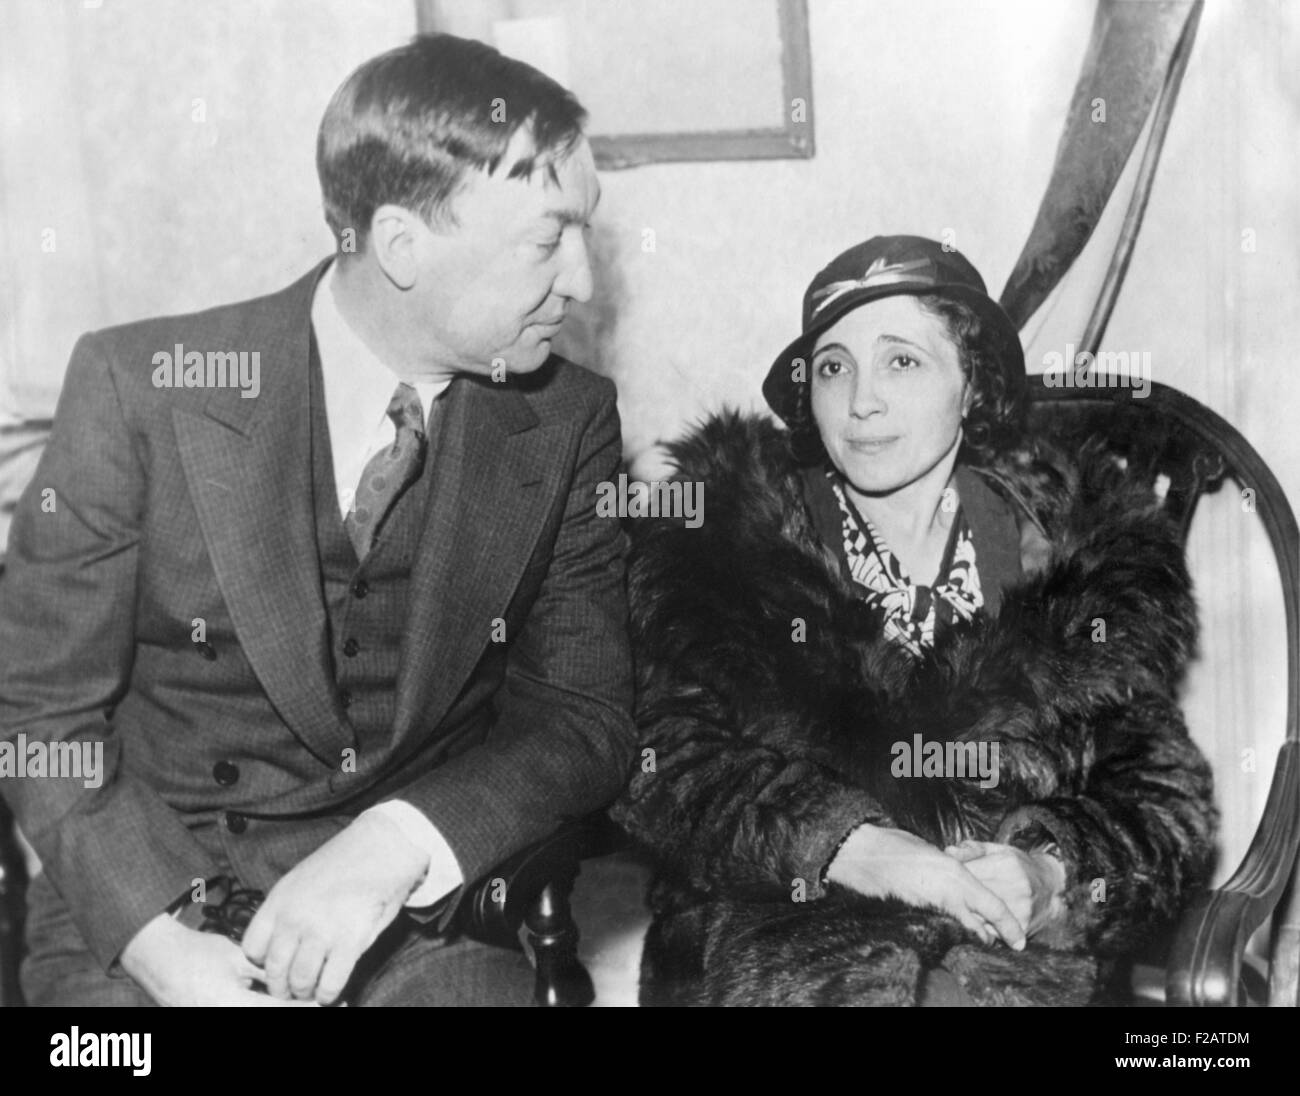 Clara Morgan Touhy, wife of gang leader, Roger Touly, with her husband's defense attorney. Nov. 21, 1933, Federal - Stock Image